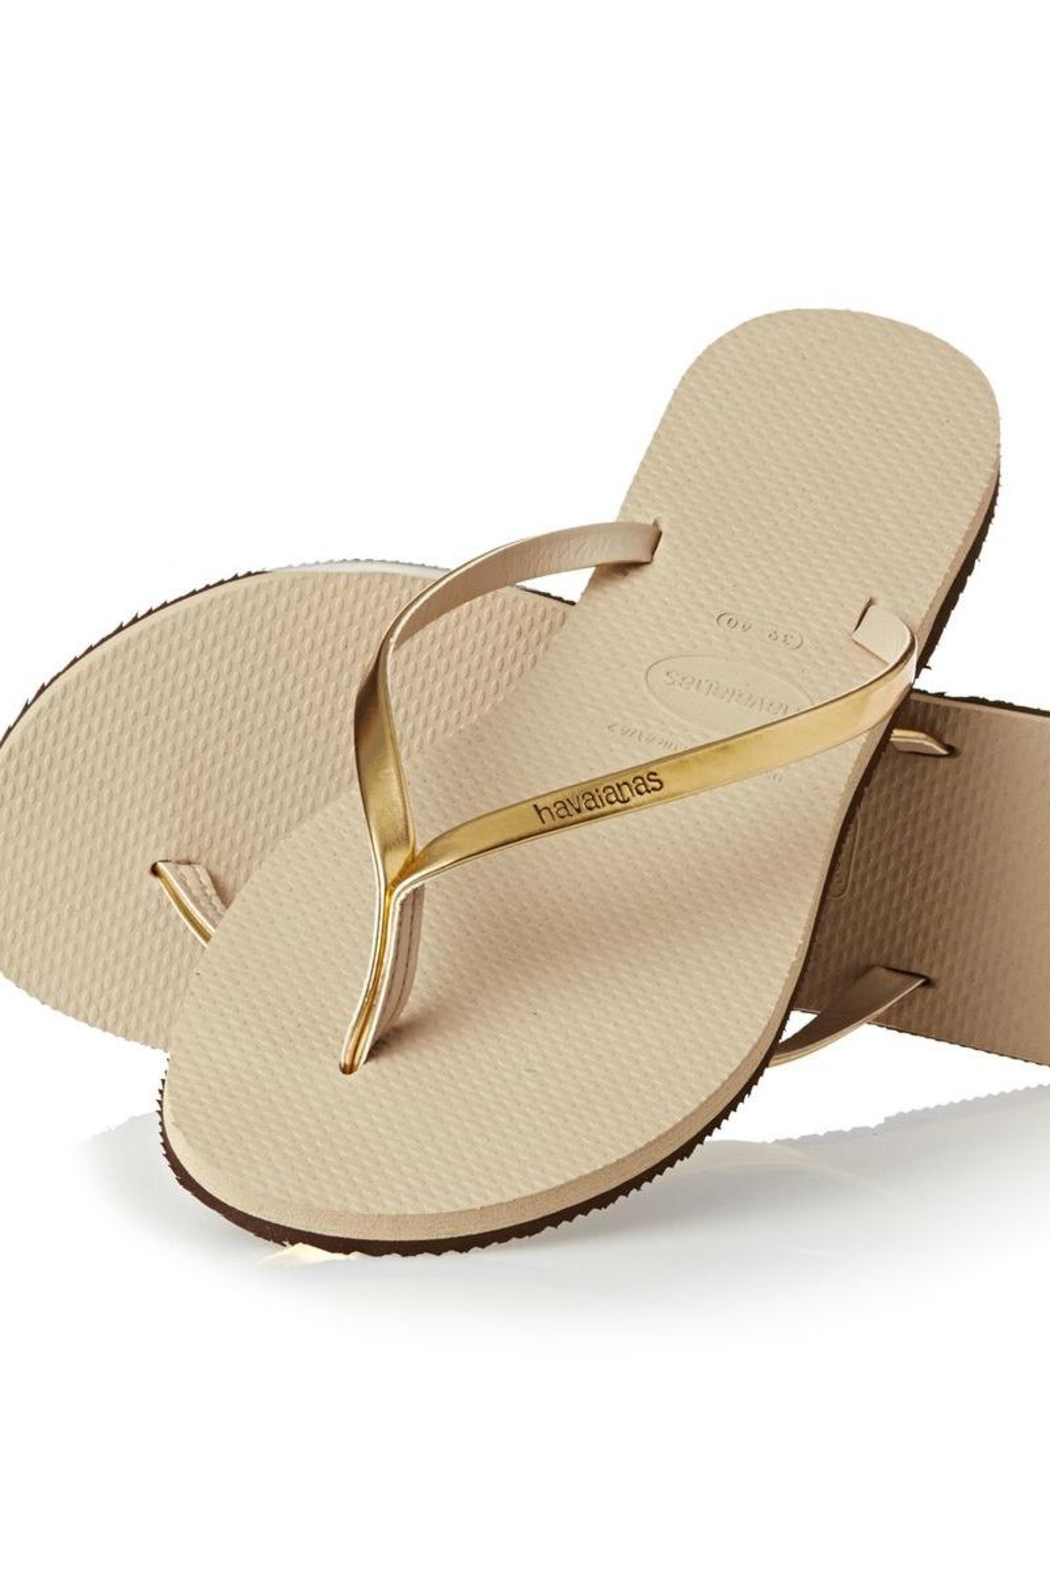 Havaianas Gold Metallic Flipflops - Front Cropped Image